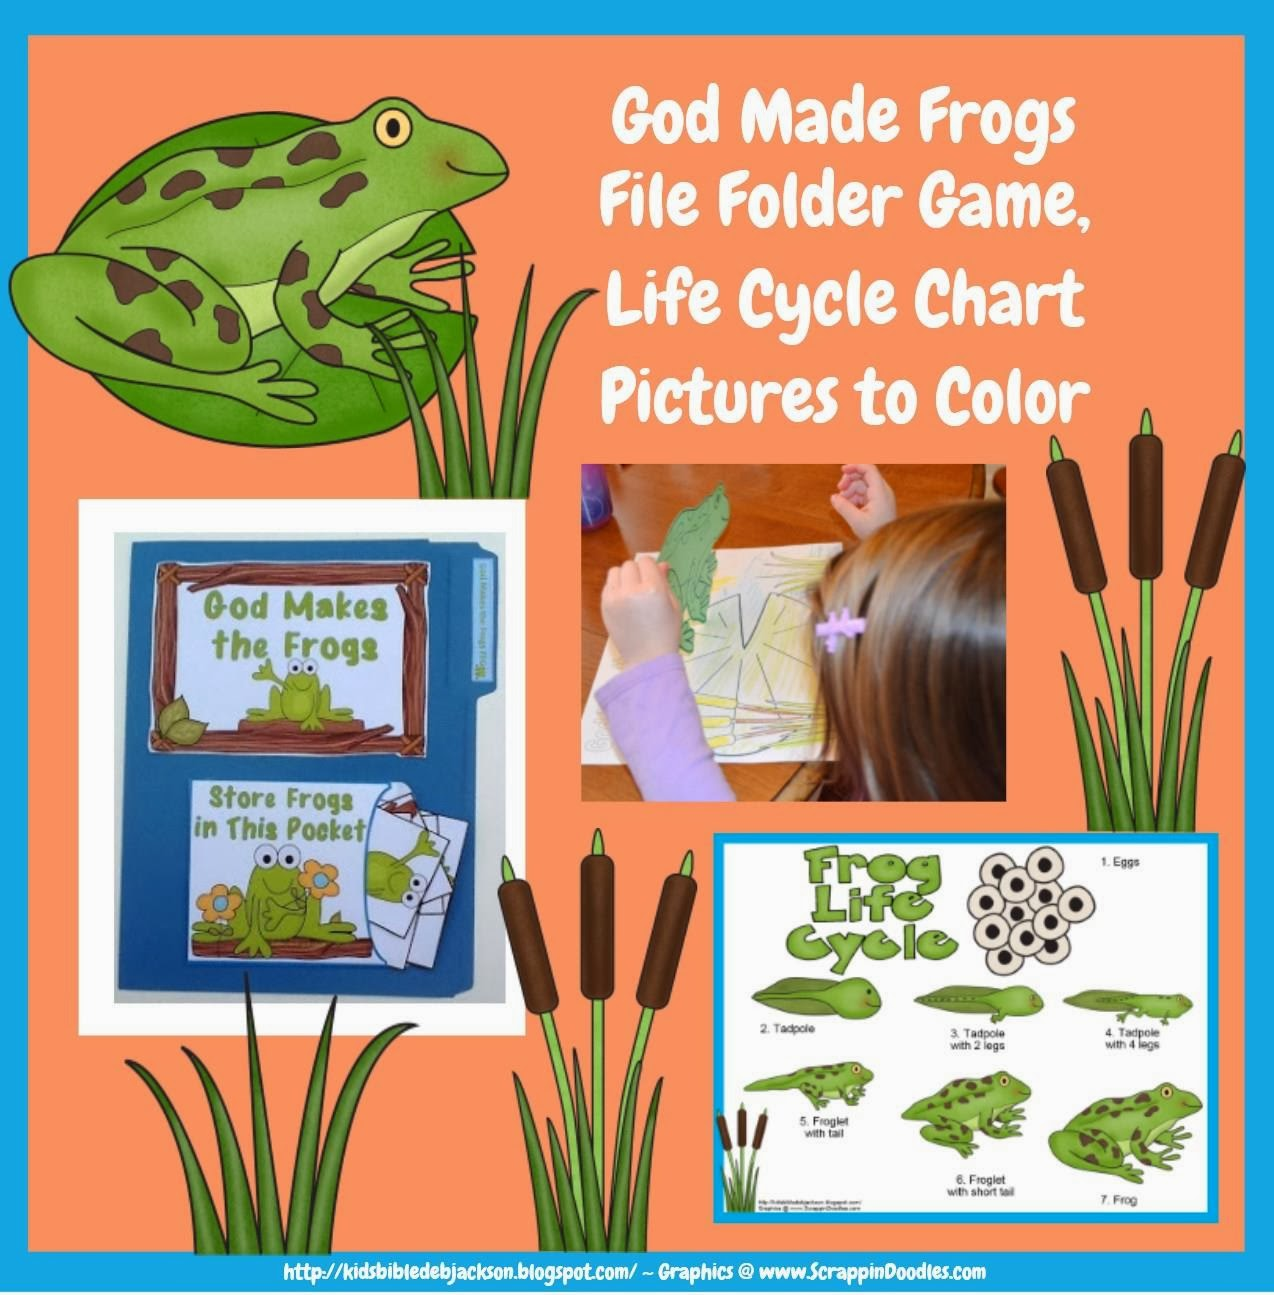 http://kidsbibledebjackson.blogspot.com/2014/01/god-makes-frogs-for-preschool.html